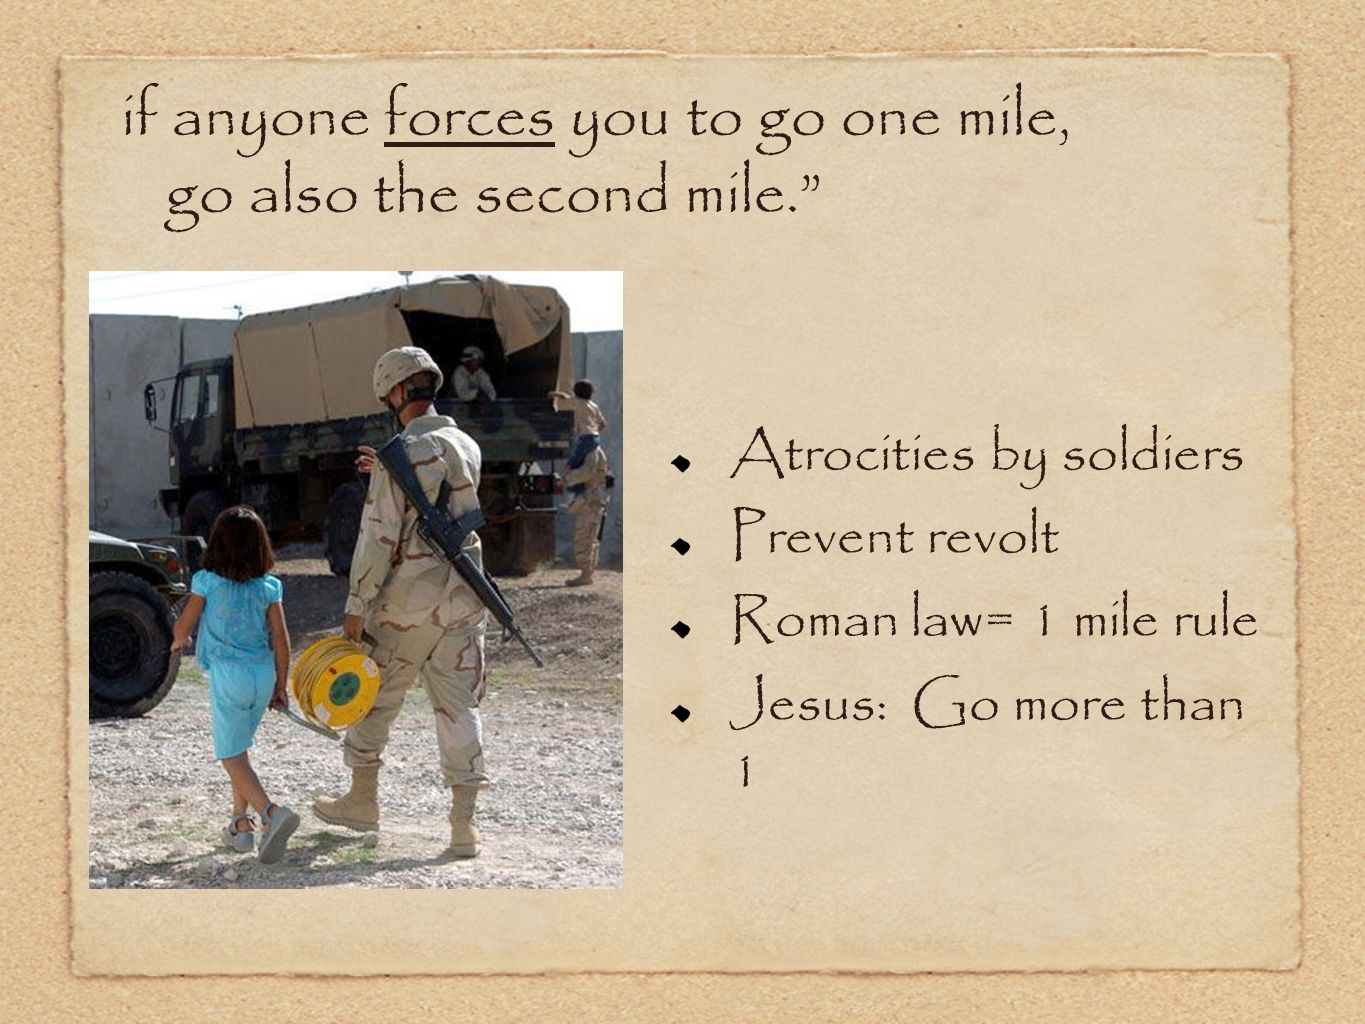 if anyone forces you to go one mile, go also the second mile. Atrocities by soldiers Prevent revolt Roman law= 1 mile rule Jesus: Go more than 1